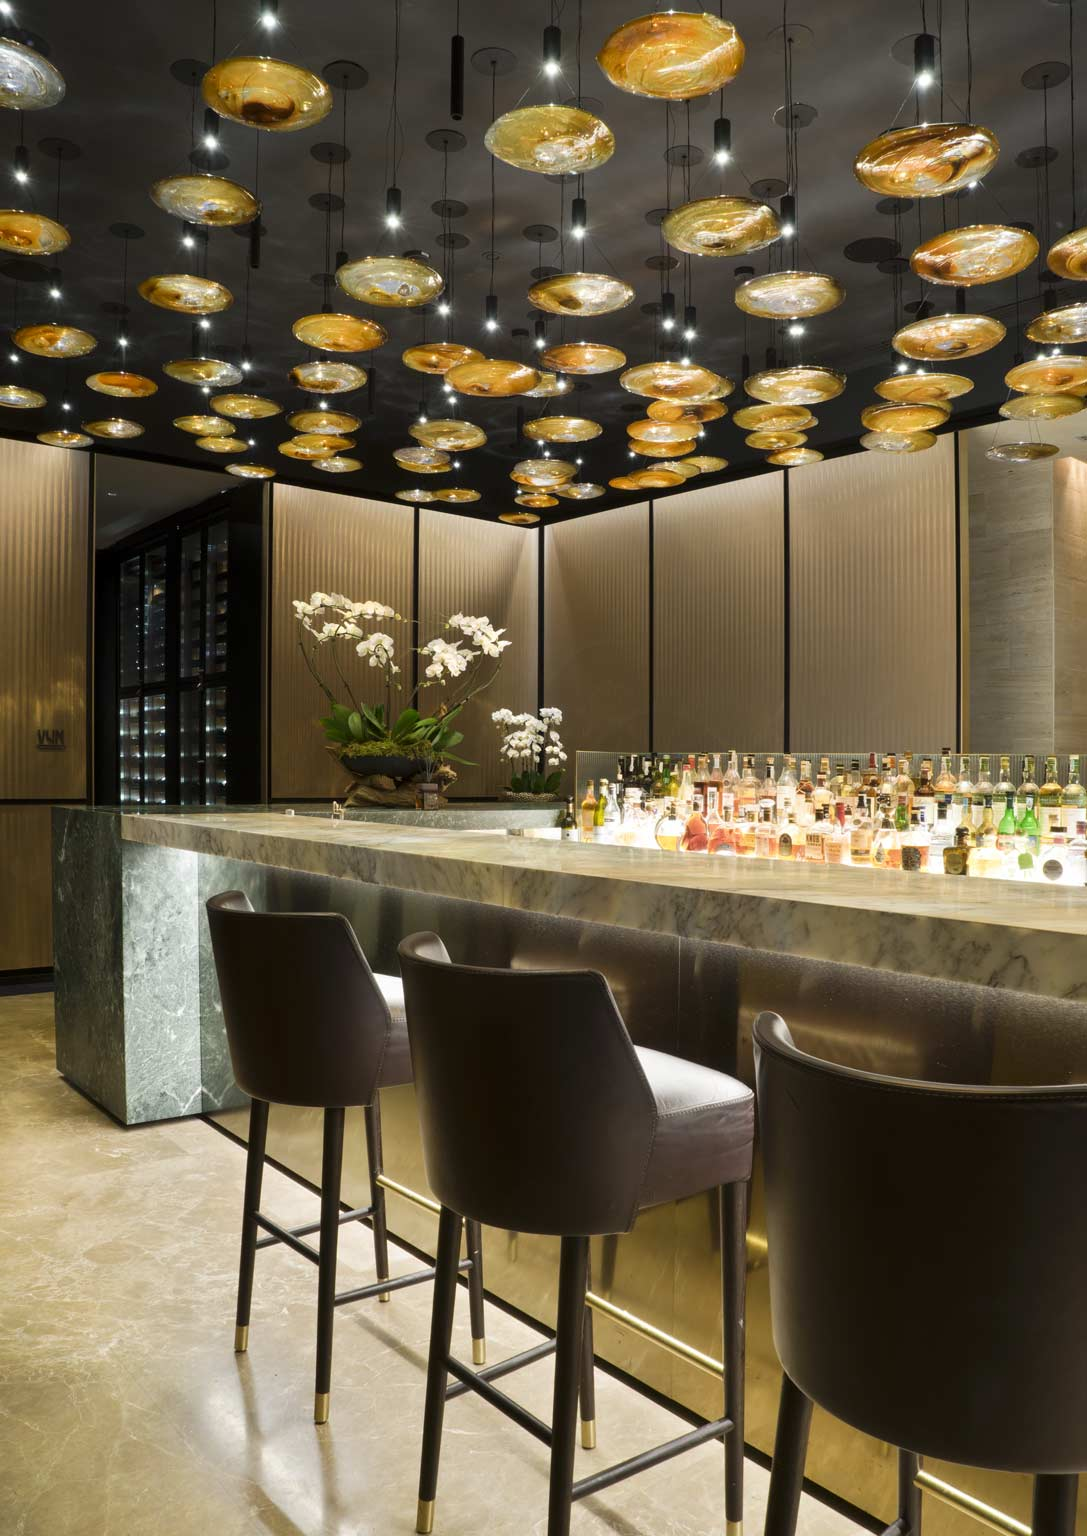 Mio Bar and Vun Restaurant | Park Hyatt | Rossi Bianchi lighting design